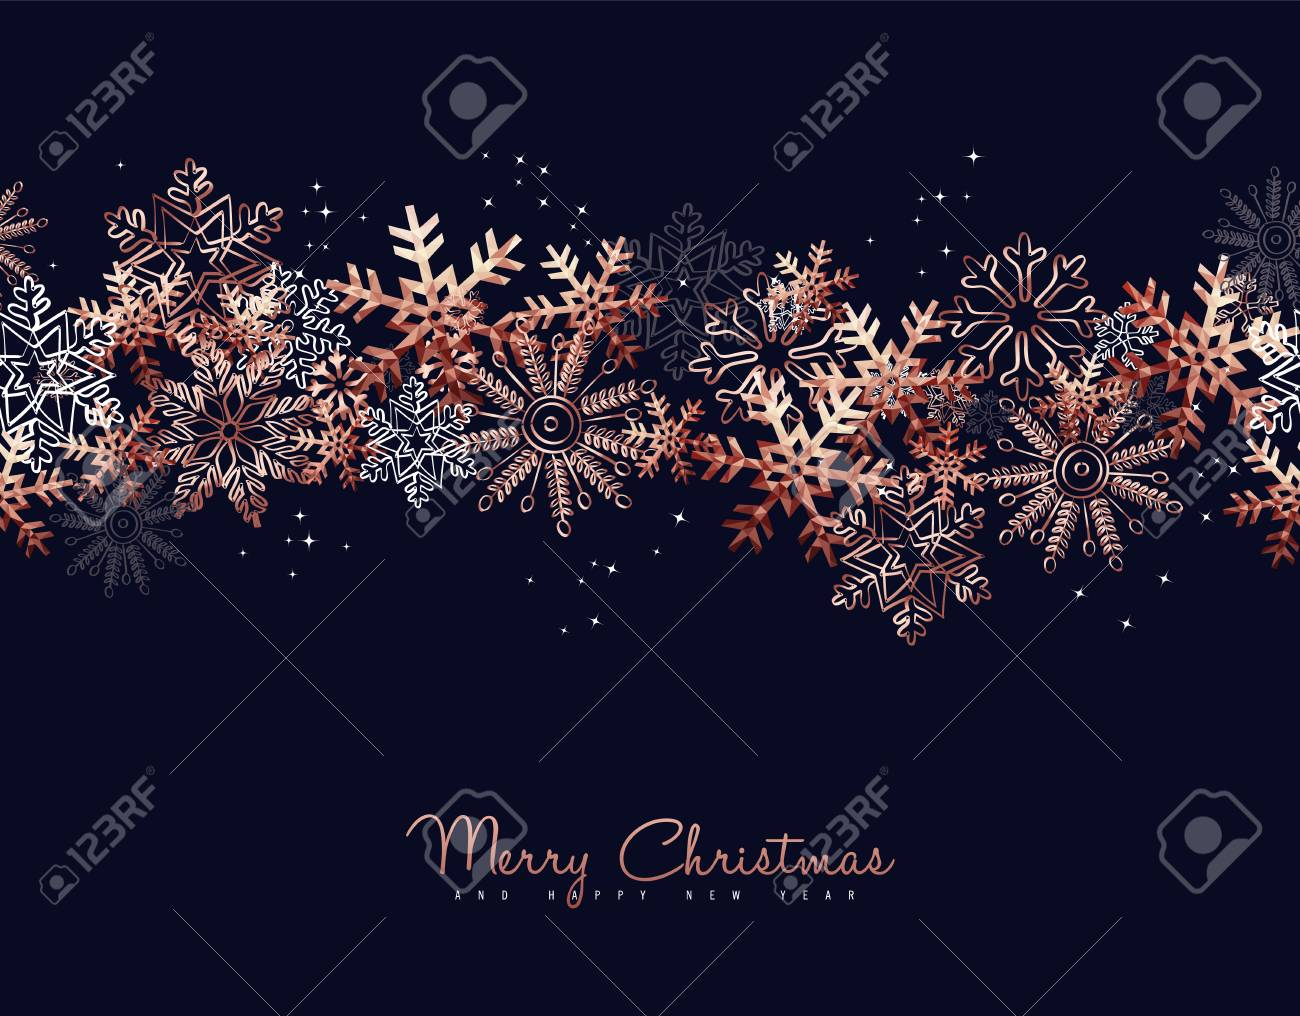 Merry Christmas greeting card design with copper snowflake pattern background for winter holiday season. - 111831457